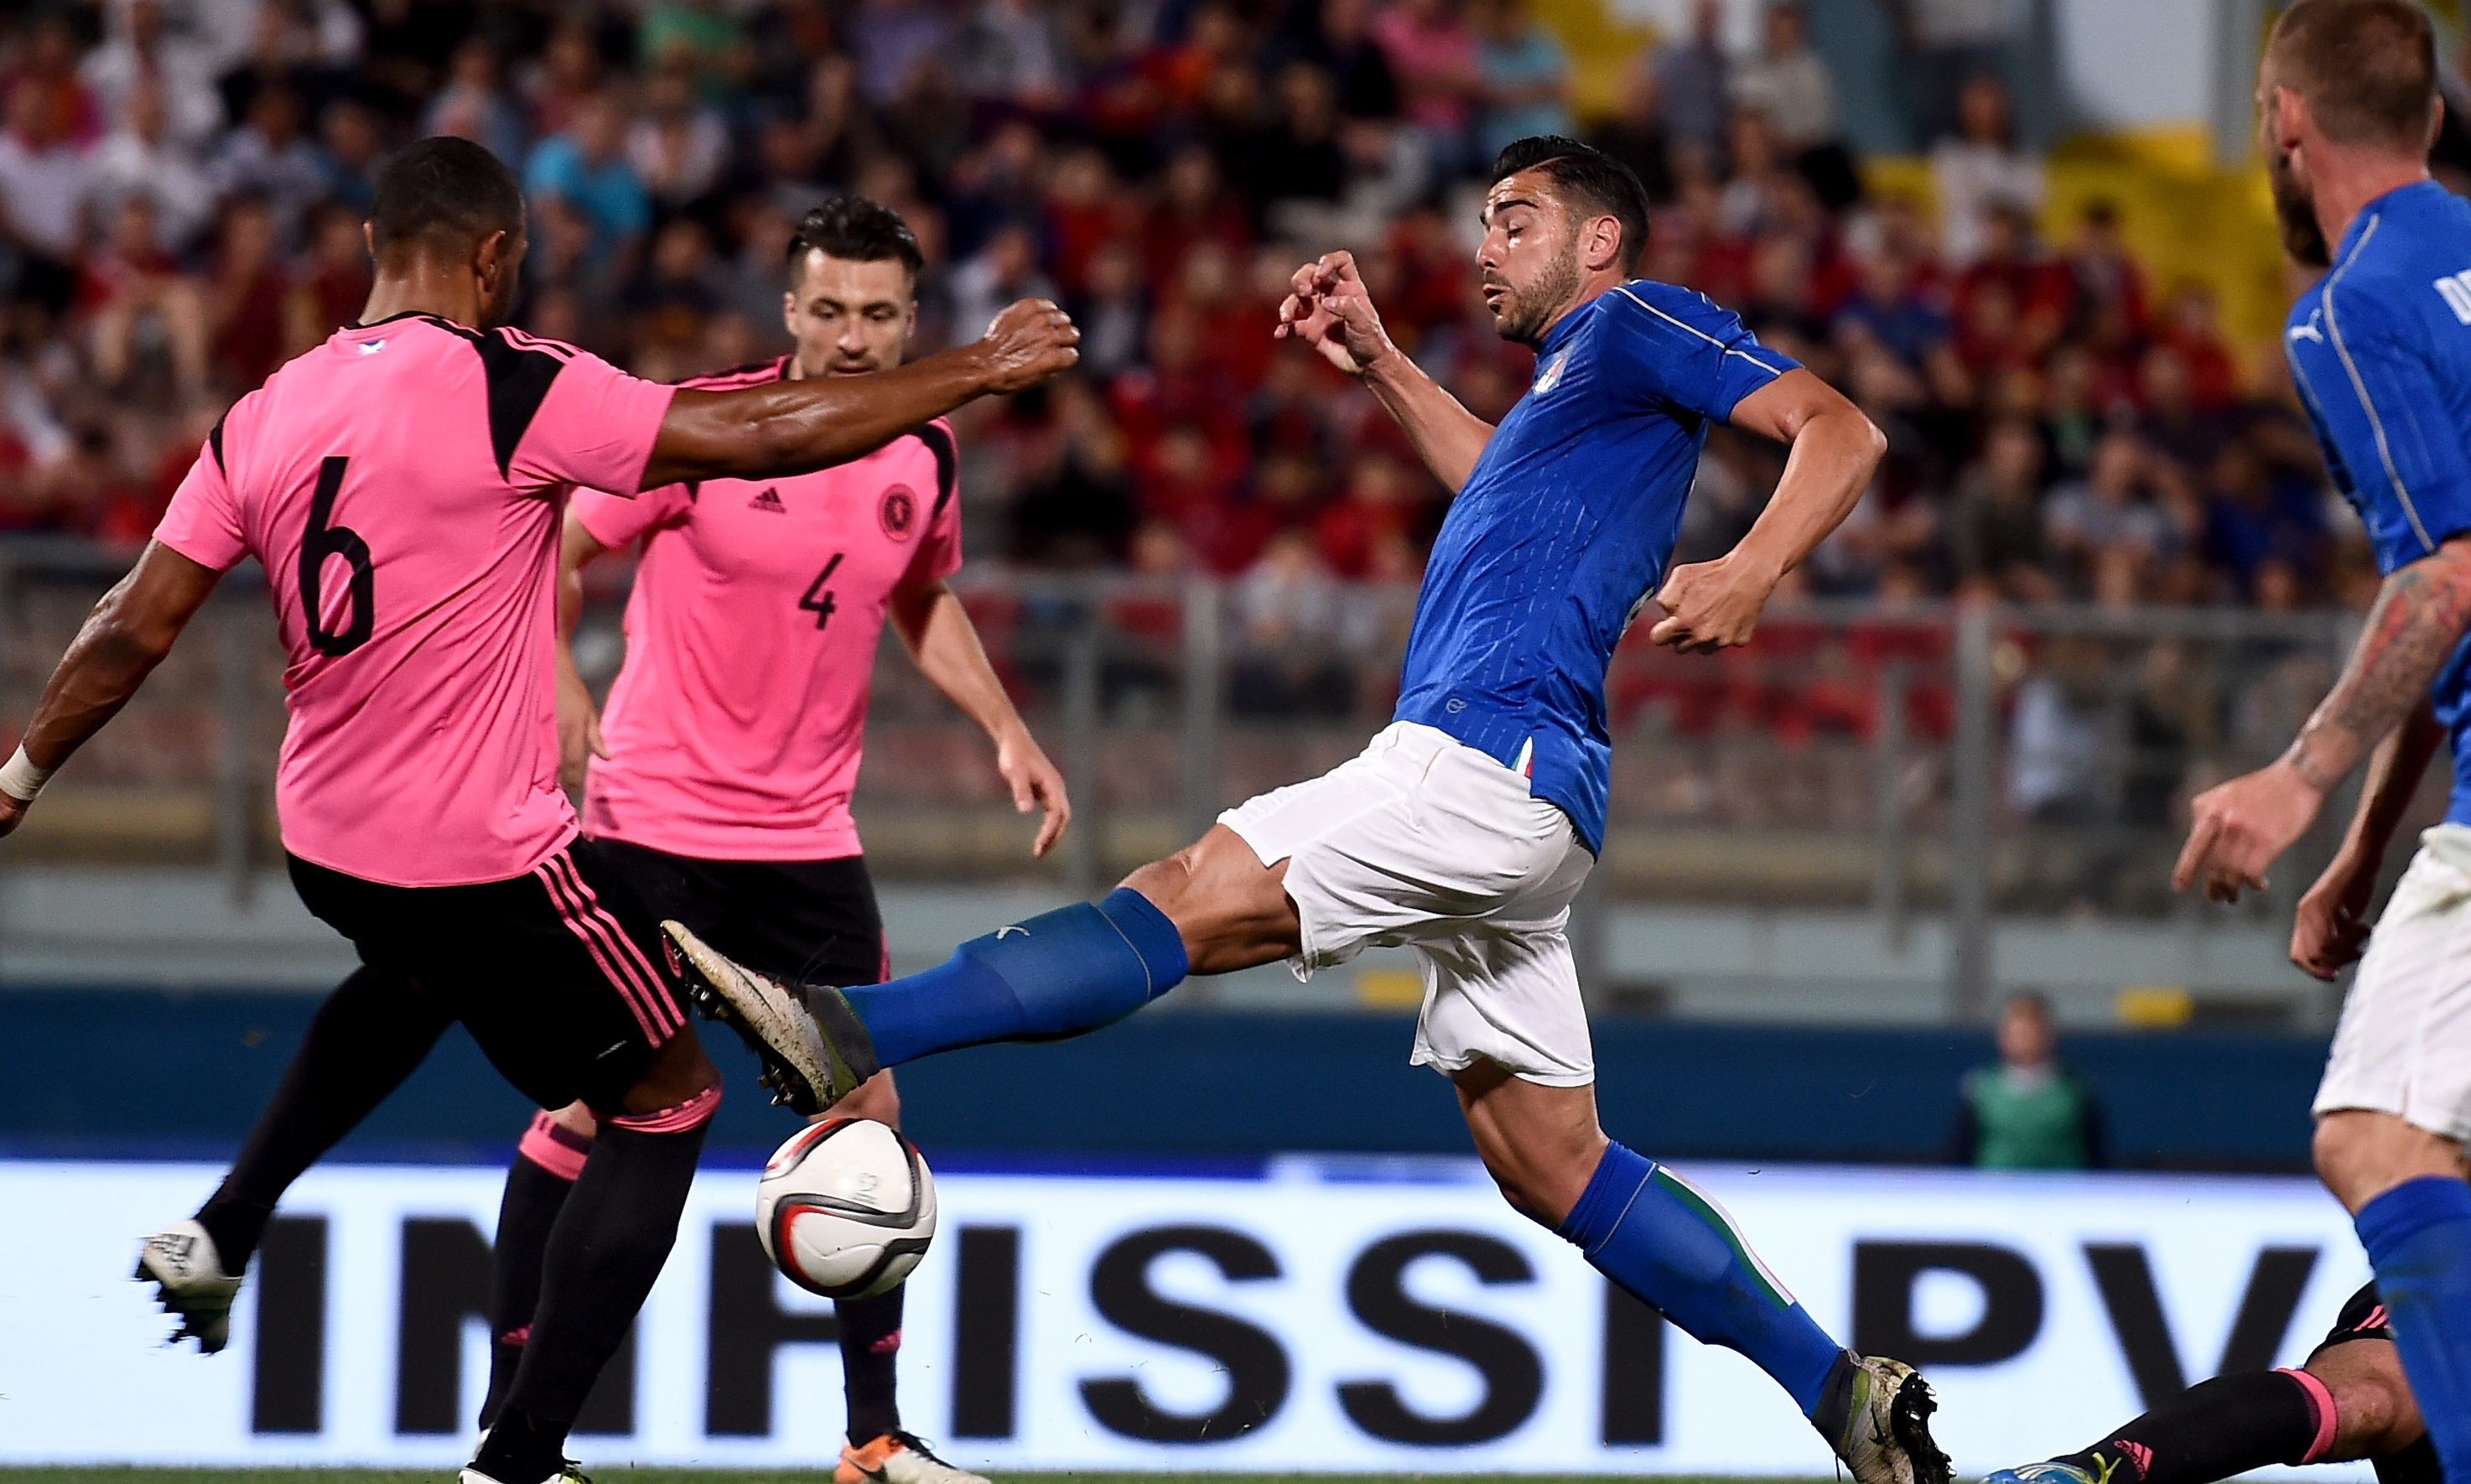 Graziano Pelle of Italy in action.